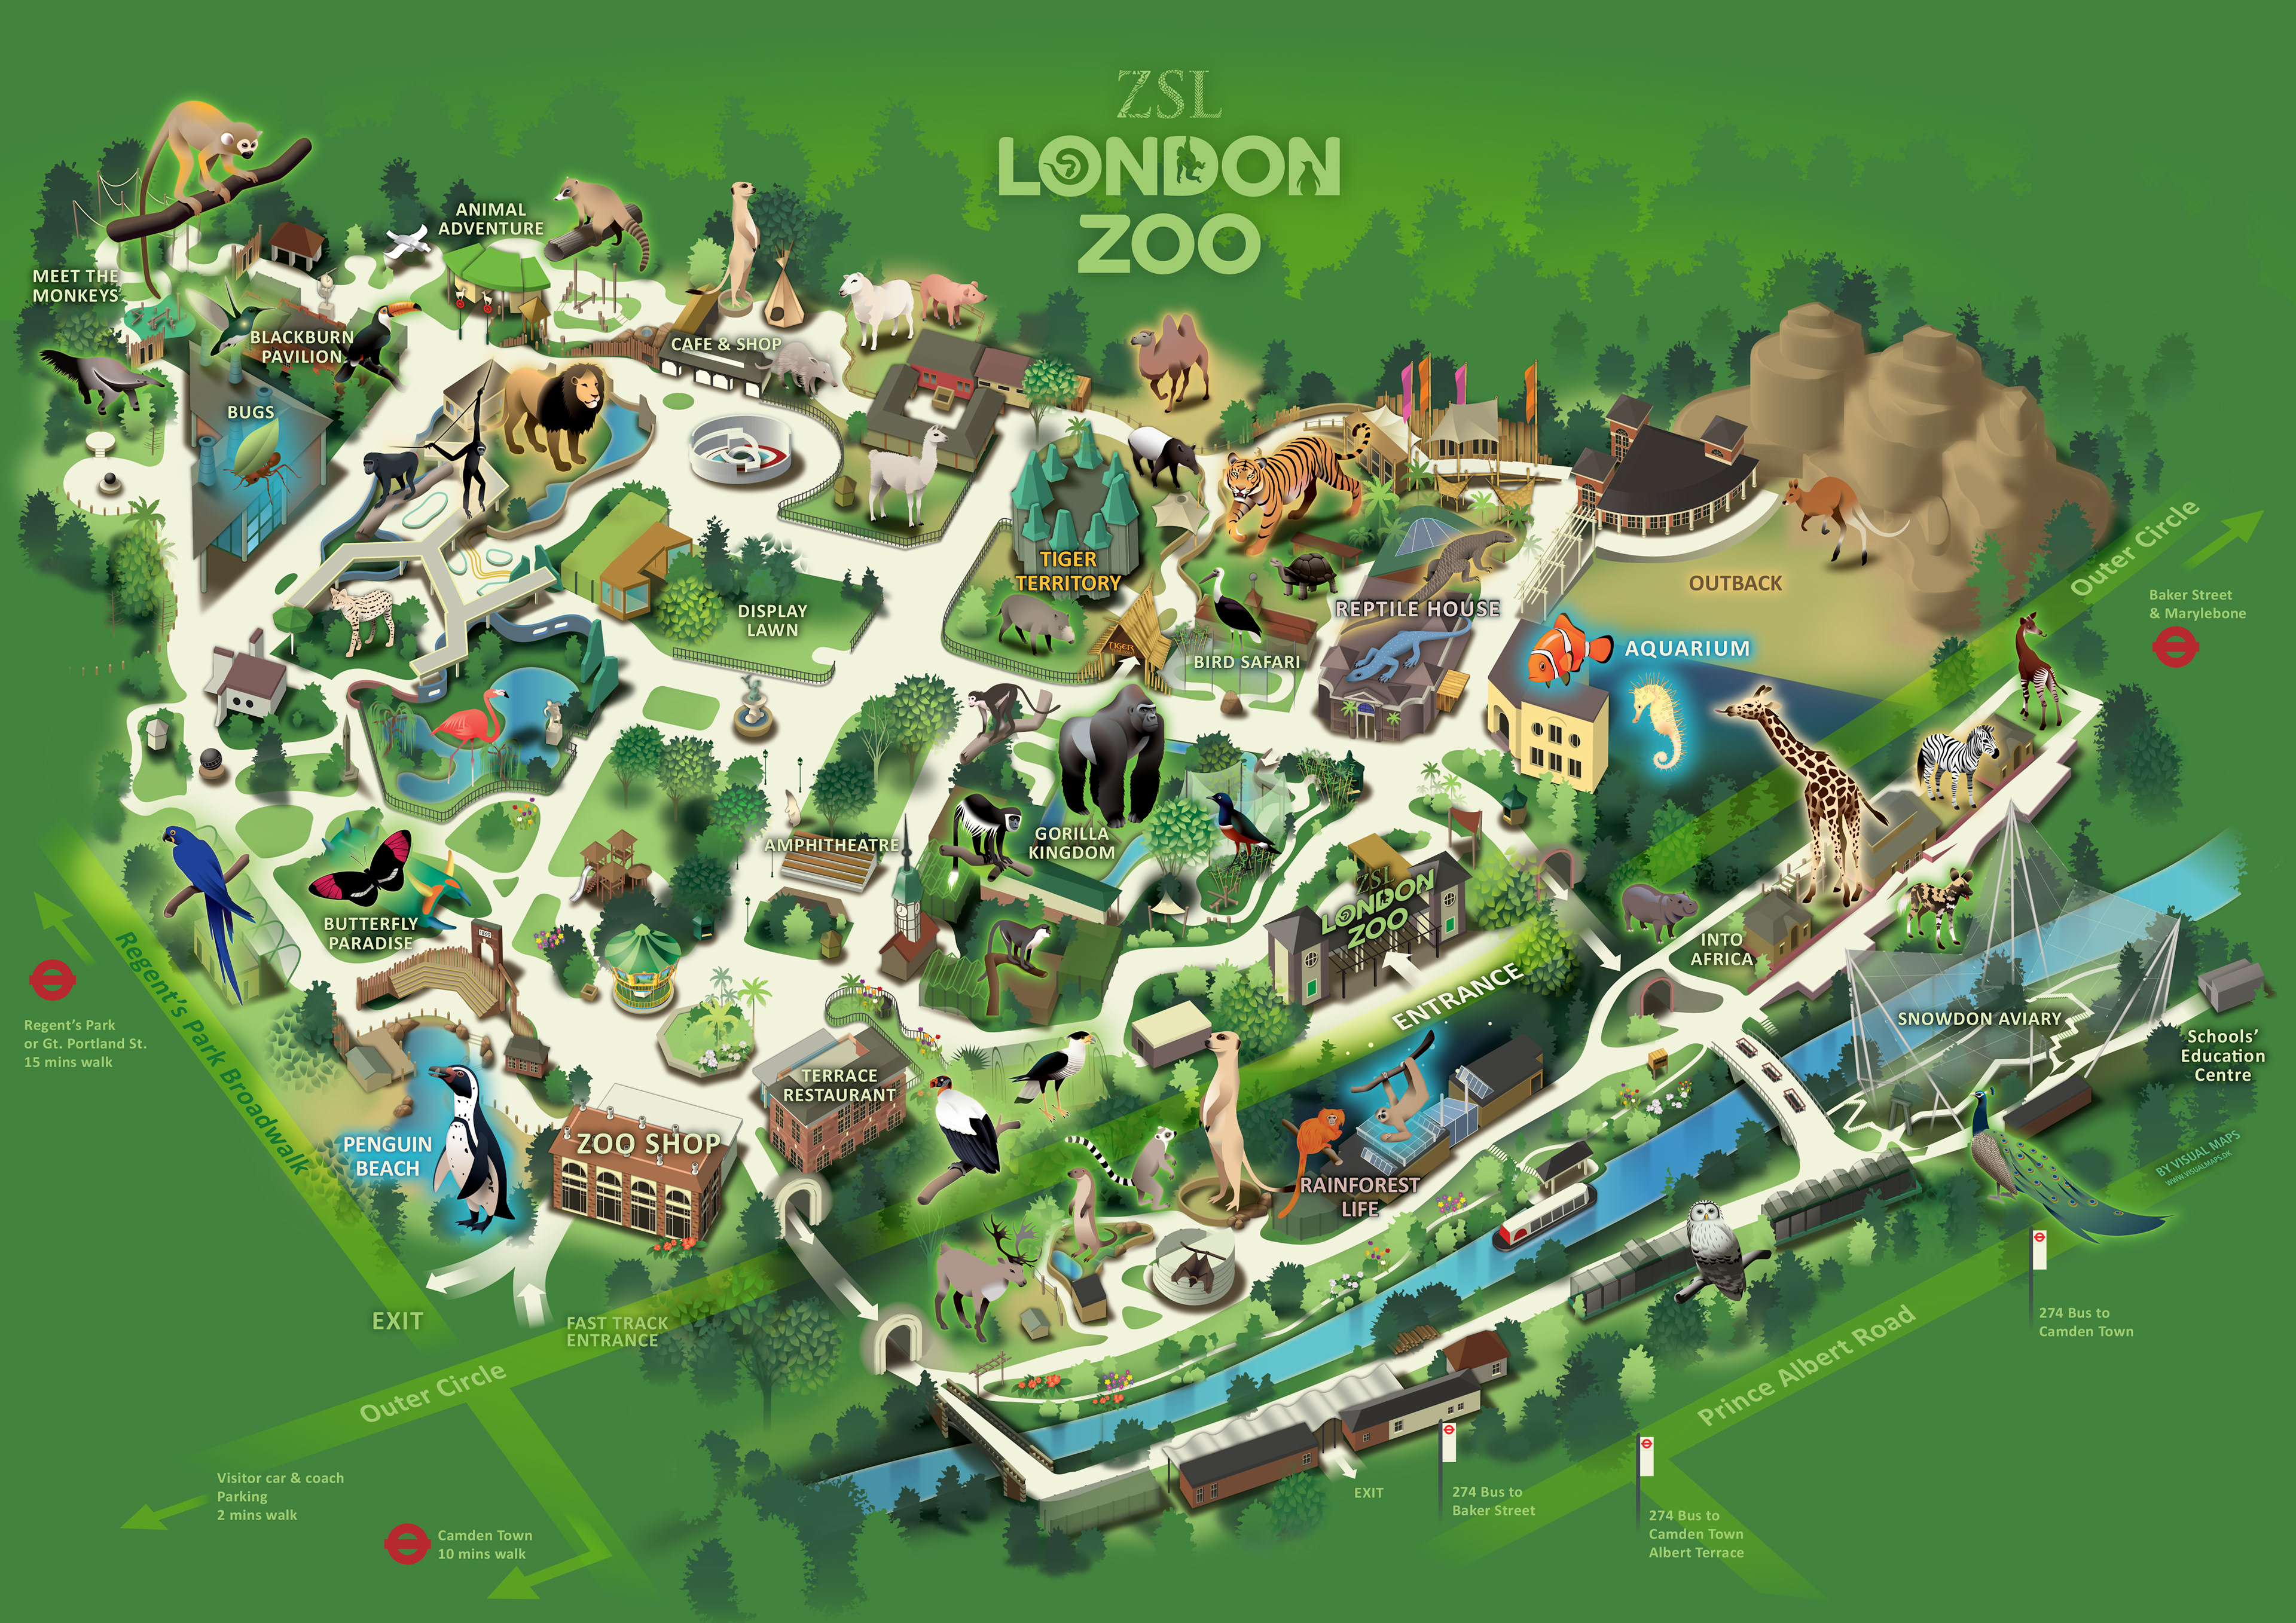 los angeles zoo map with London Zoo on Excalibur further London Zoo in addition Map Of Zsl Whipsnade Zoo likewise Ohio furthermore Aaa.